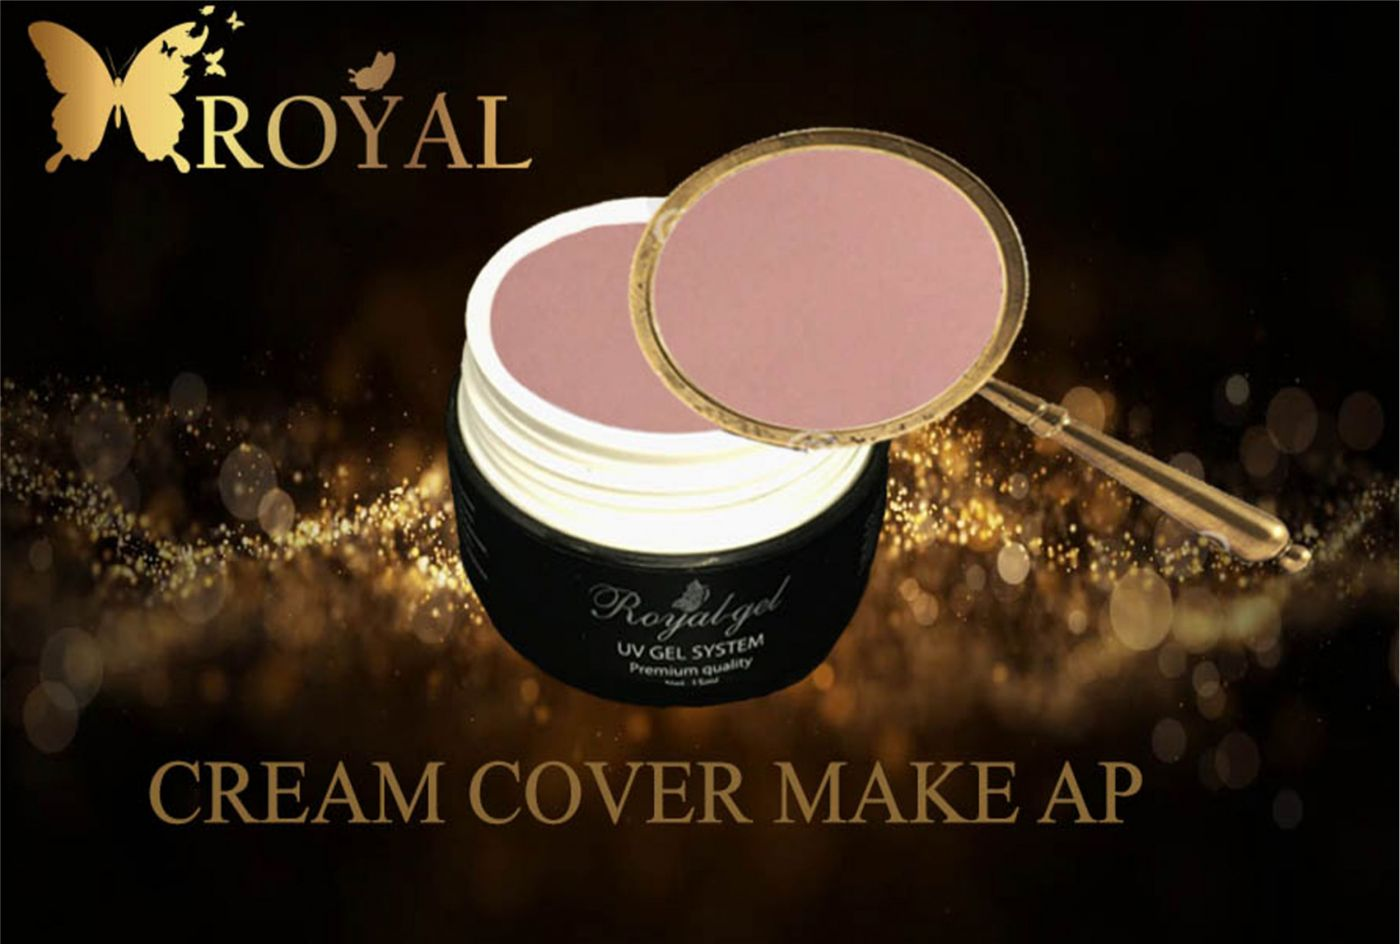 CREAM COVER MAKE AP ROYAL GEL